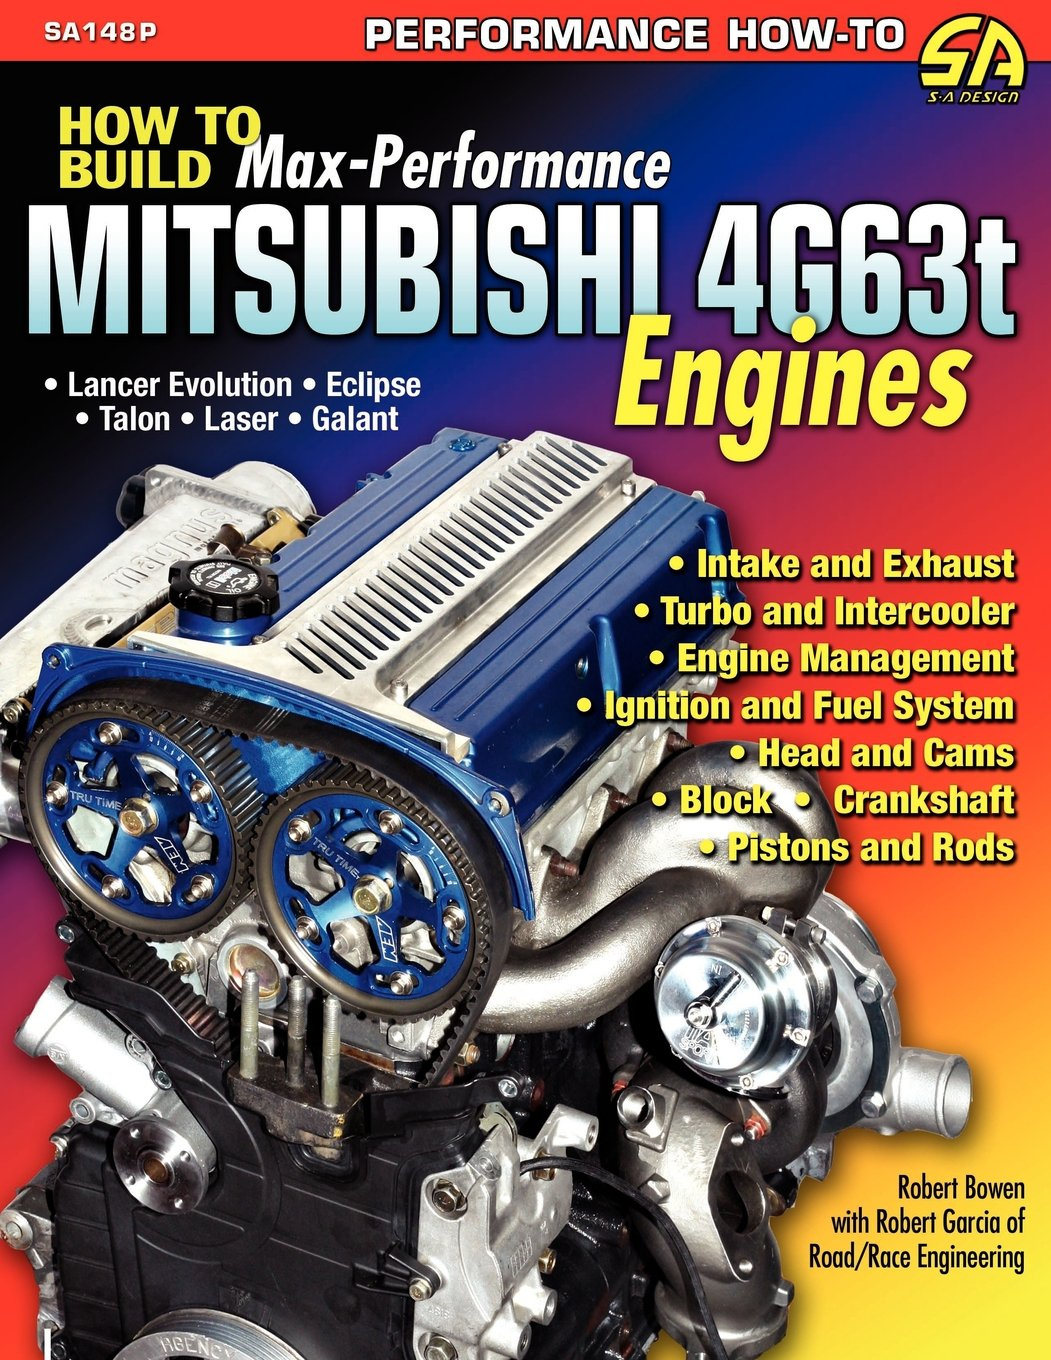 How to Build Max-Performance Mitsubishi 4g63t Engines: Robert Bowen, Robert  Garcia: 9781613250662: Amazon.com: Books